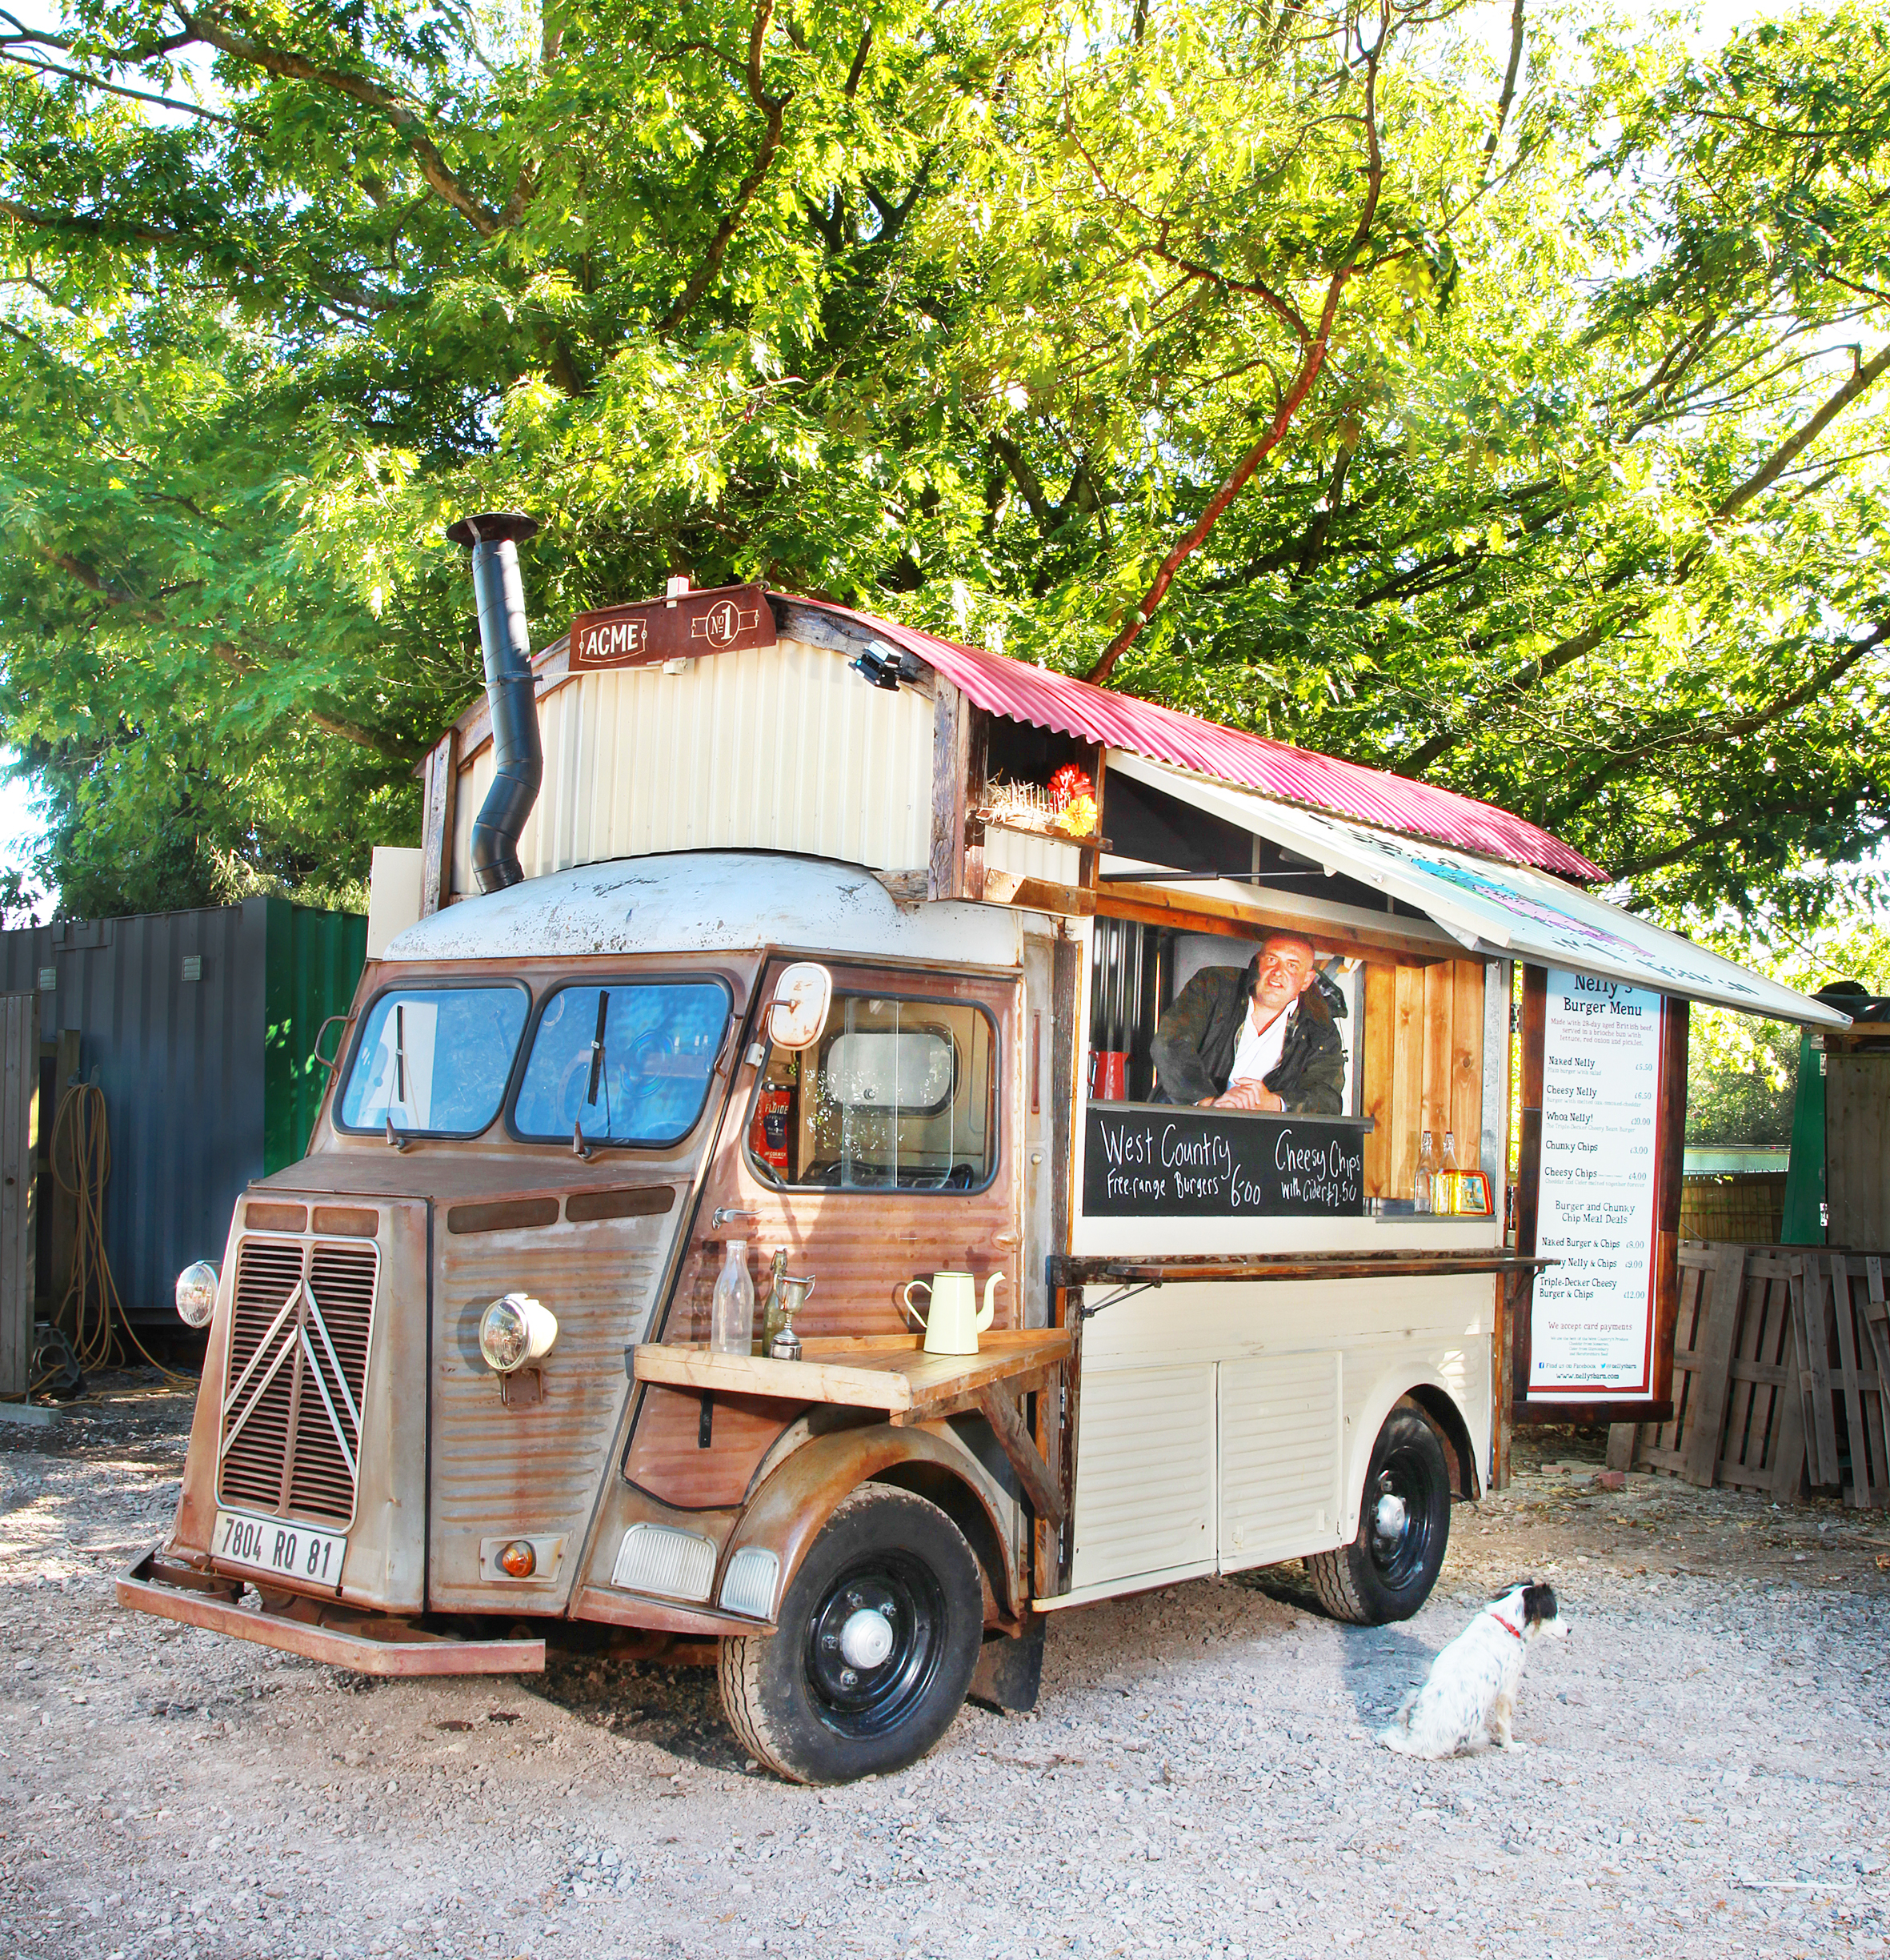 Ben Mills has a great creative talent with food and vans, with this lovely Festival and Street Food pimp called Nelly's Barn. Vote for it in the up and coming Street Food awards please, it's fab.